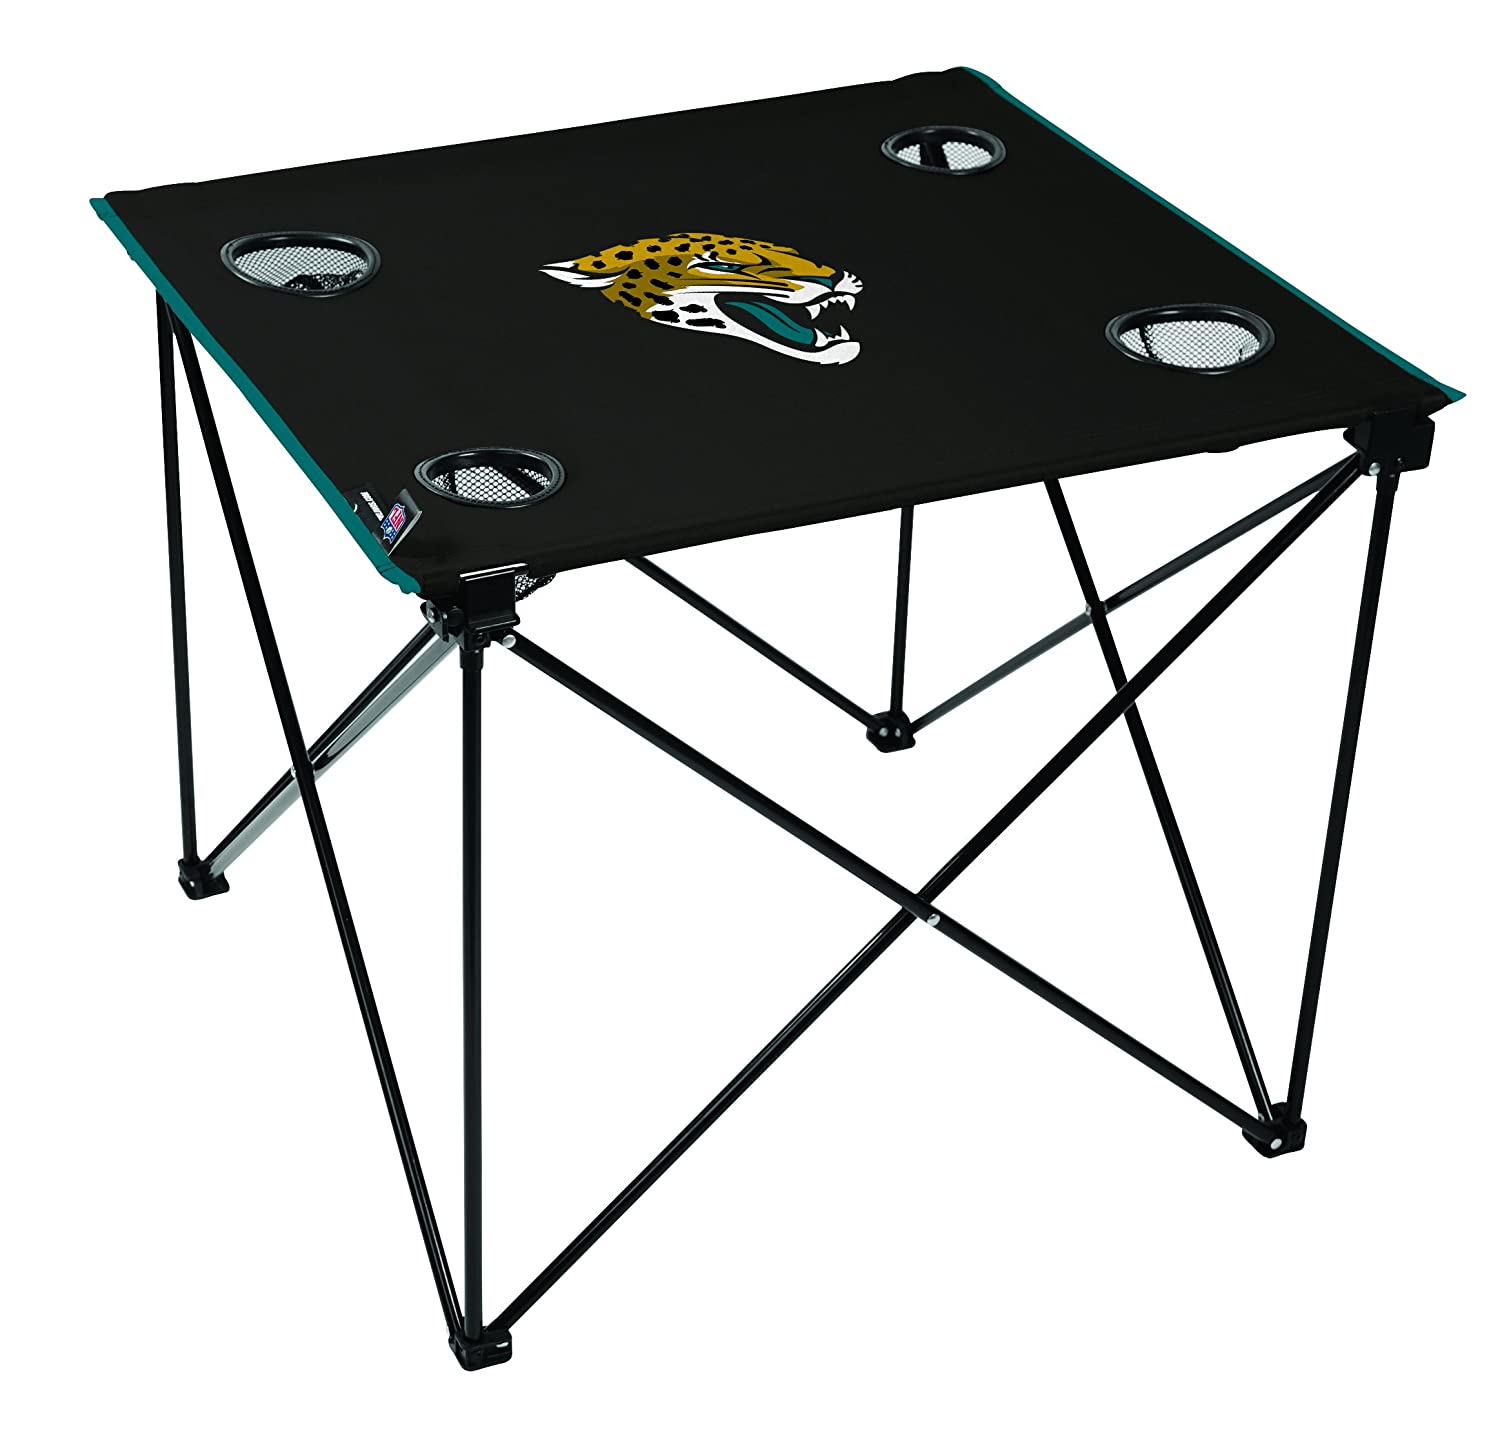 NFL Deluxe Tailgate Table All Team Options